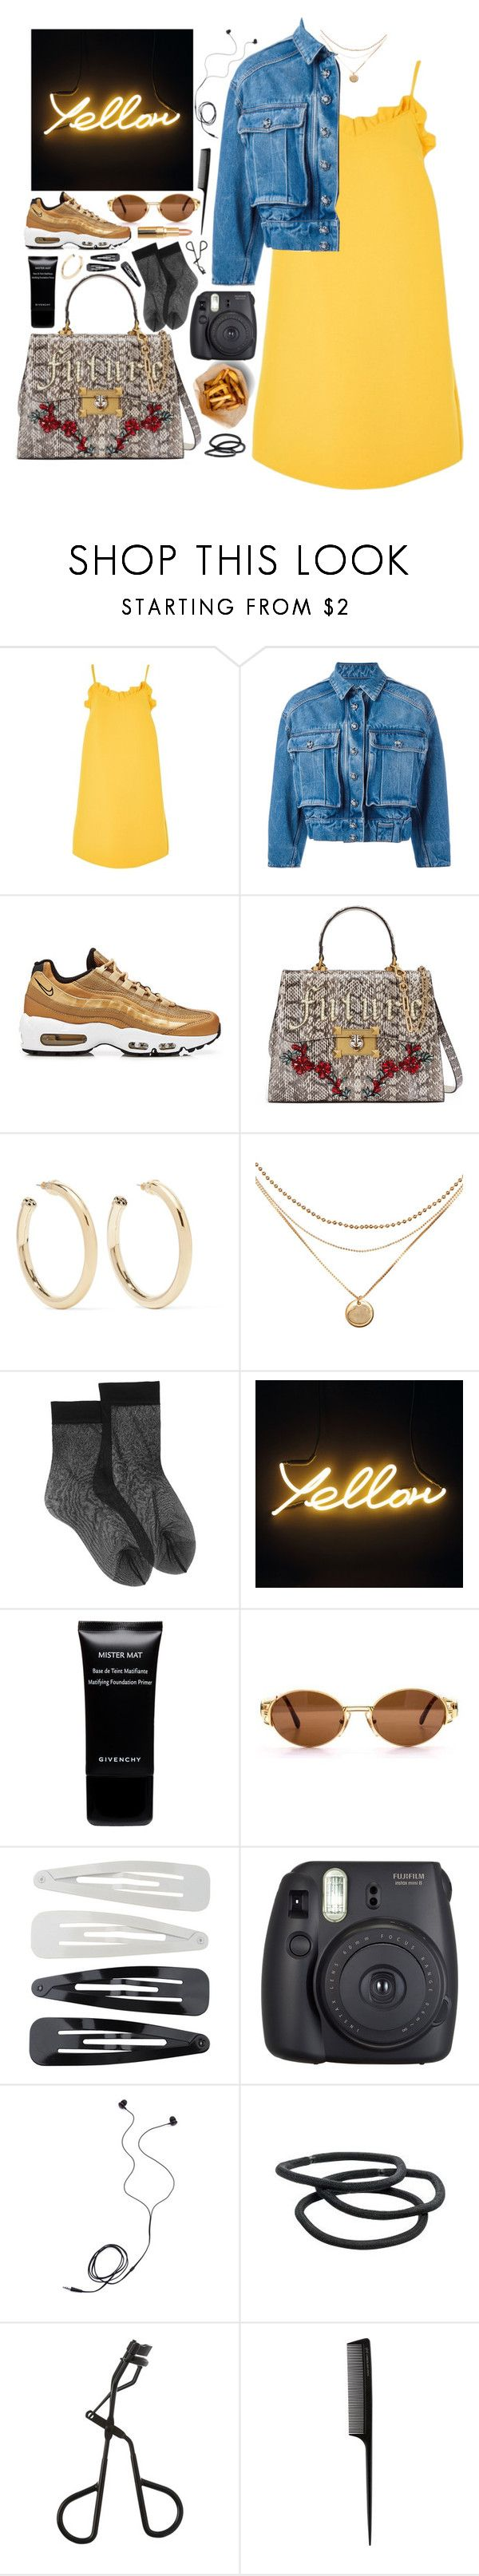 """Geen titel #555"" by s-ensible ❤ liked on Polyvore featuring Topshop, Dolce&Gabbana, NIKE, Gucci, Kenneth Jay Lane, Givenchy, Forever 21, Fuji, Diane Von Furstenberg and Goody"